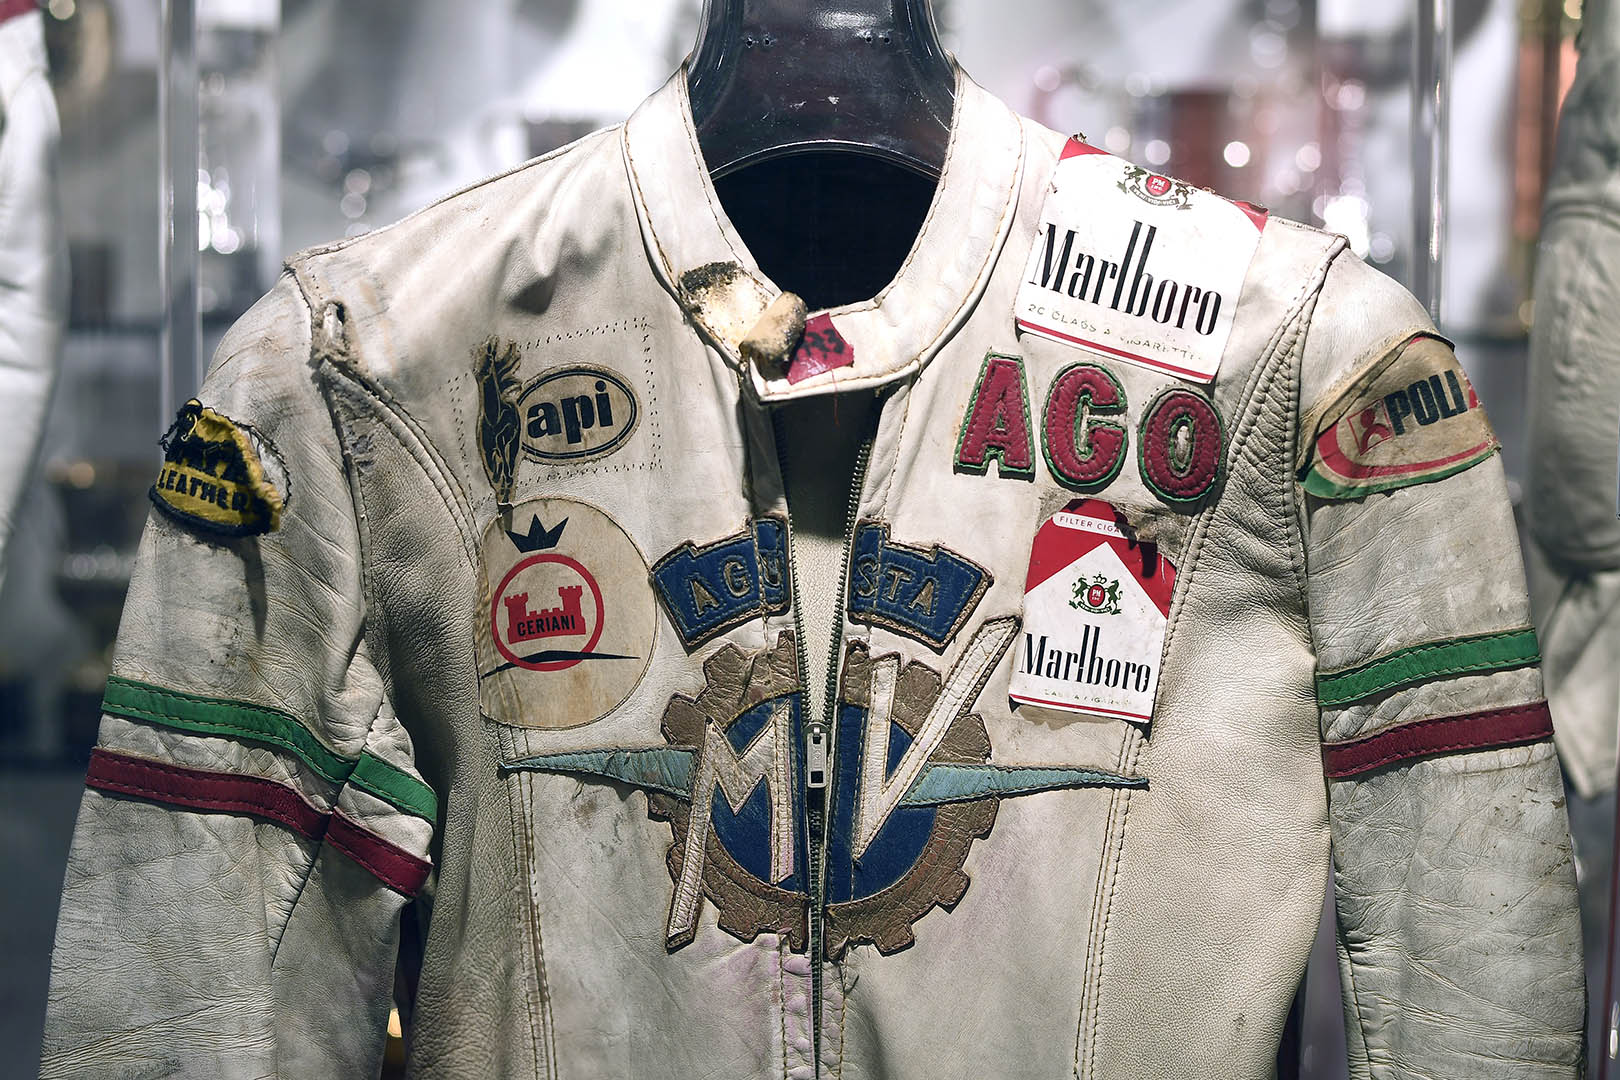 Agostini Museum First Look - World Champion